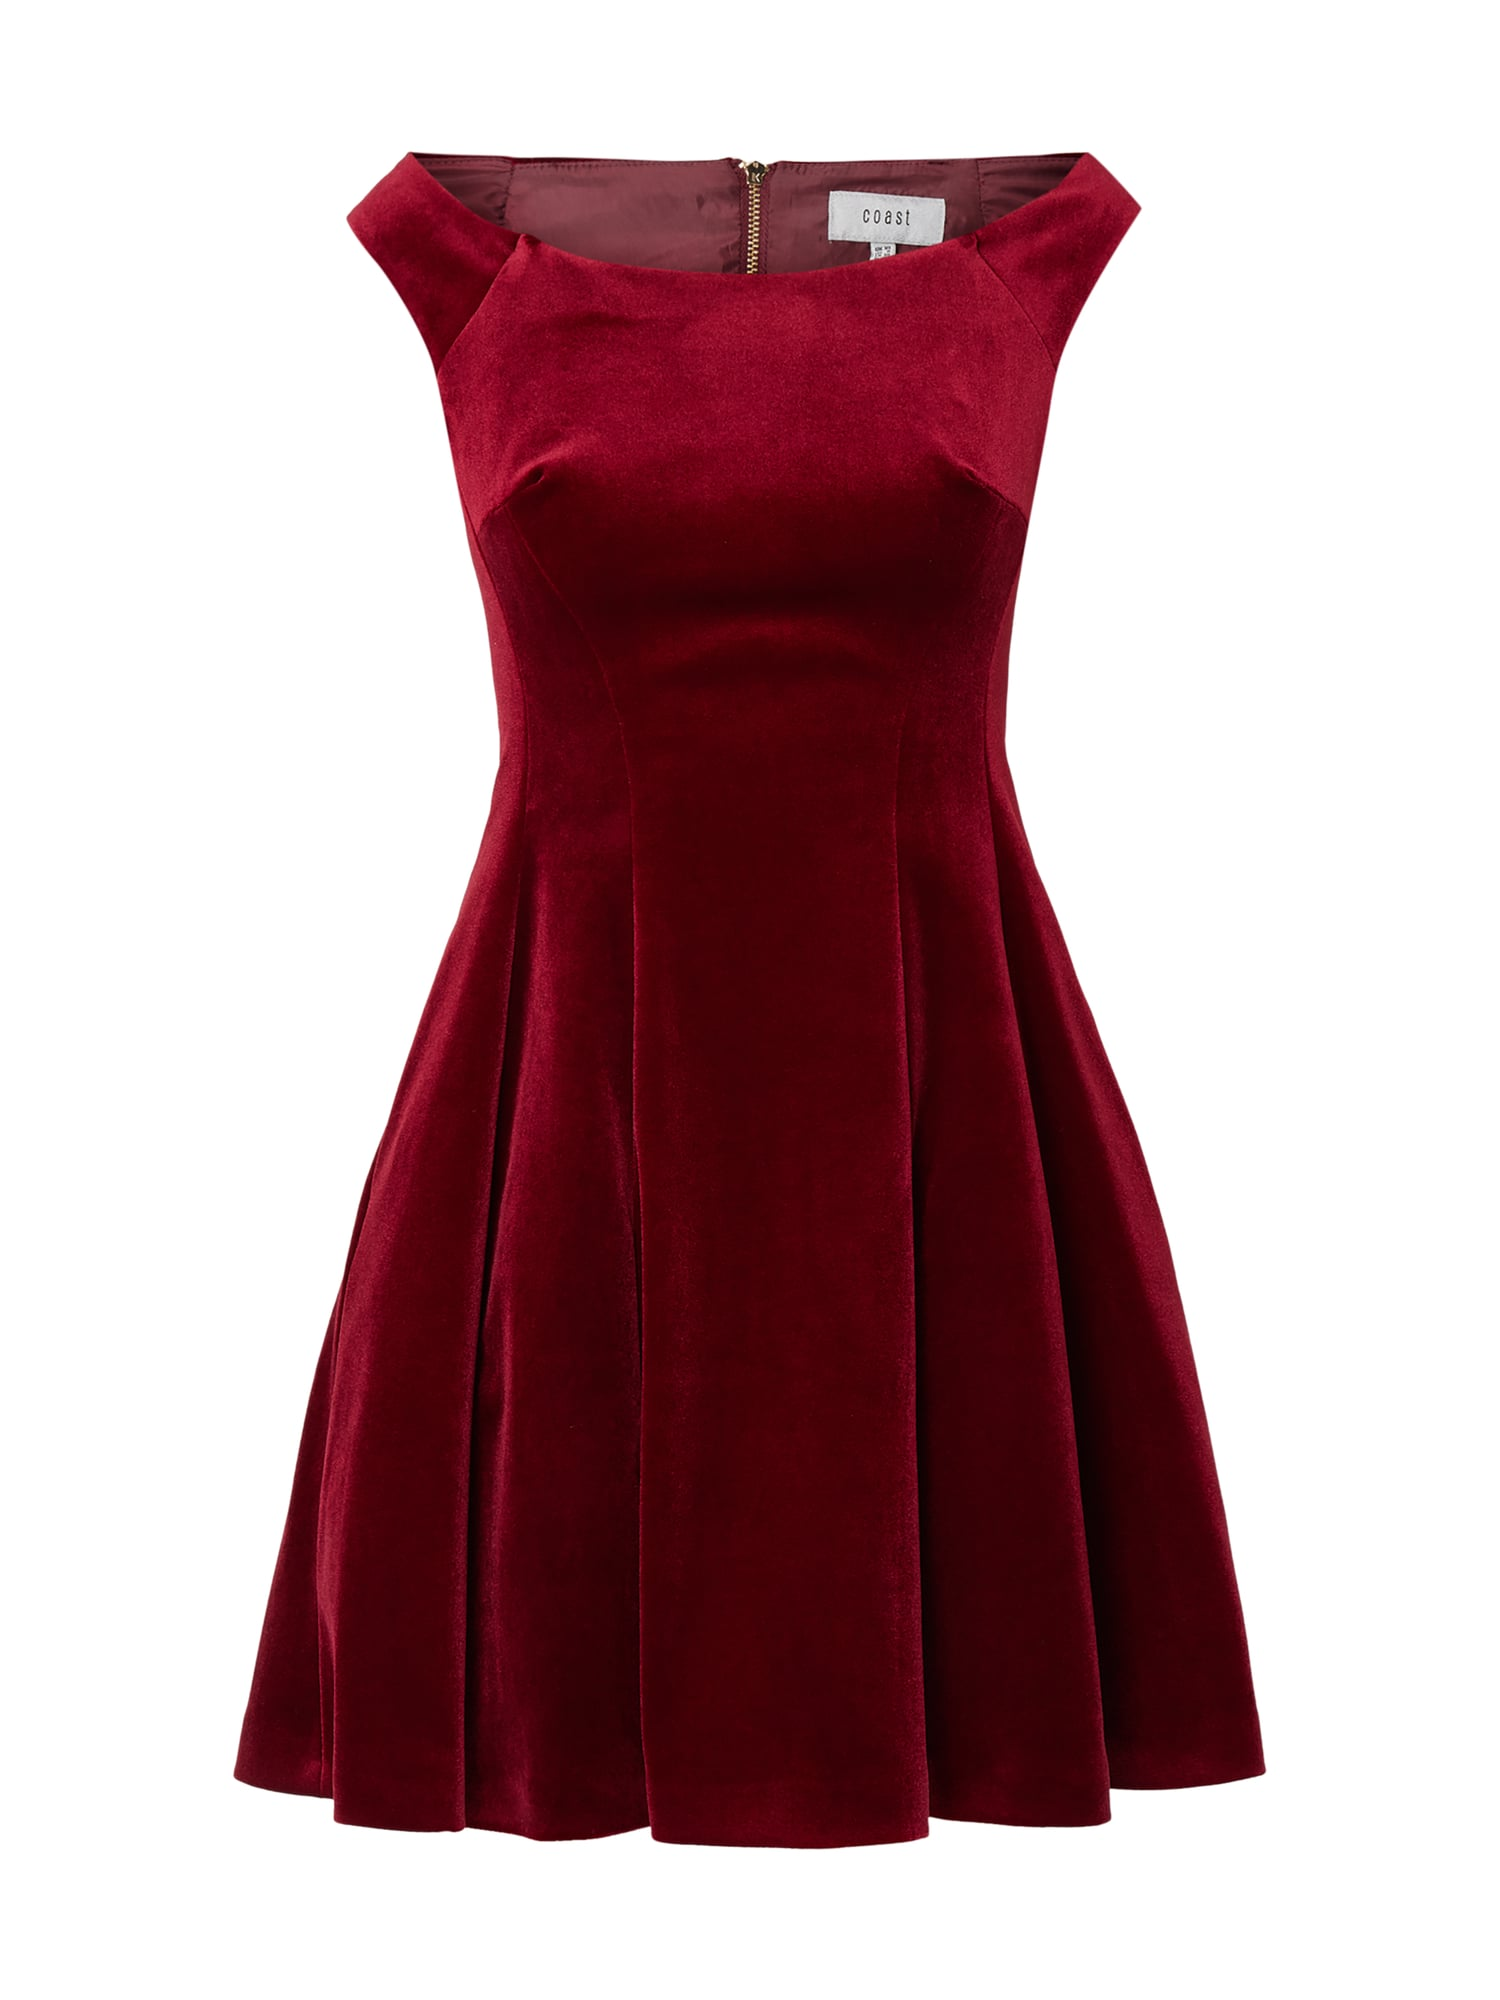 low priced 07681 481a2 COAST Cocktailkleid aus Samt in Rot online kaufen (9878206) ▷ P&C Online  Shop